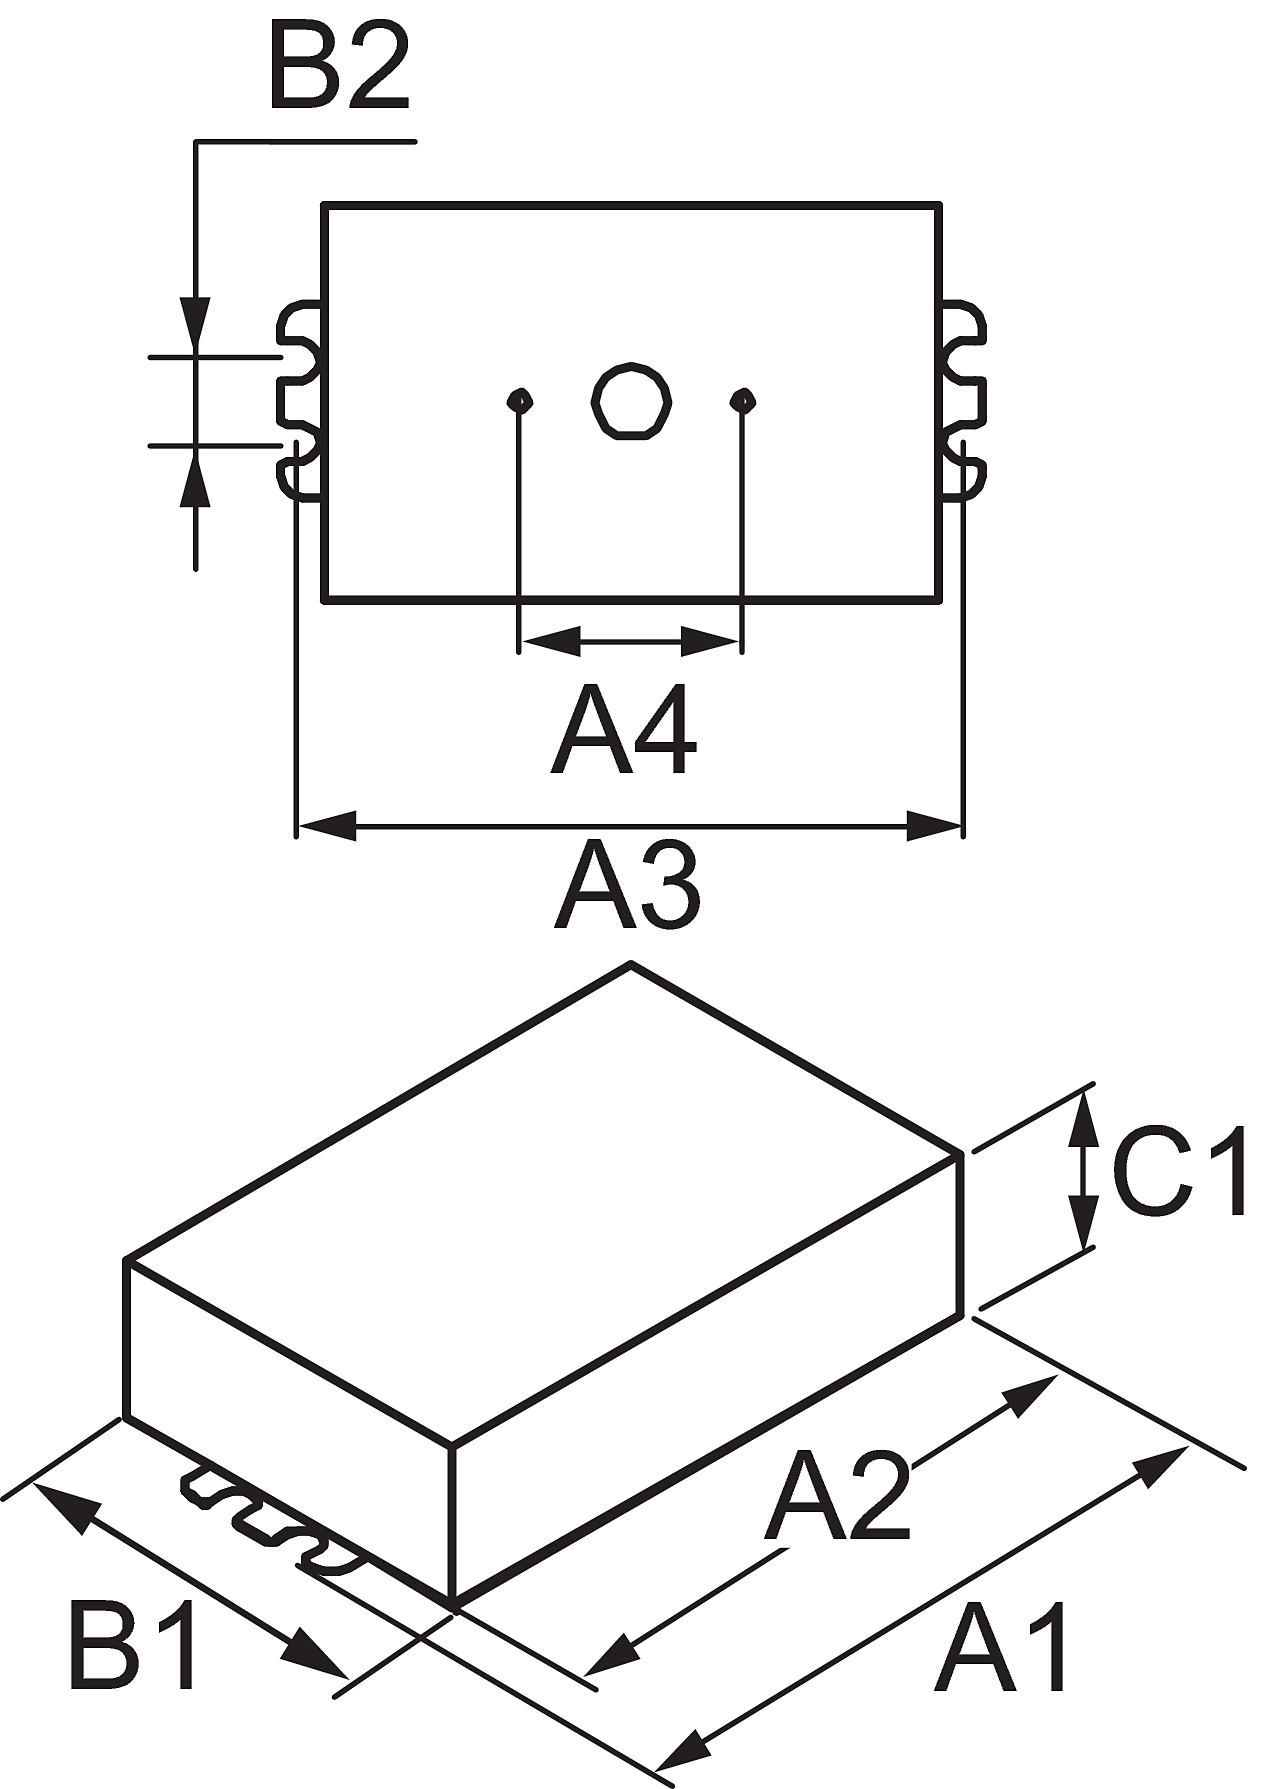 3 phase step up transformer 208 to 480 diagram